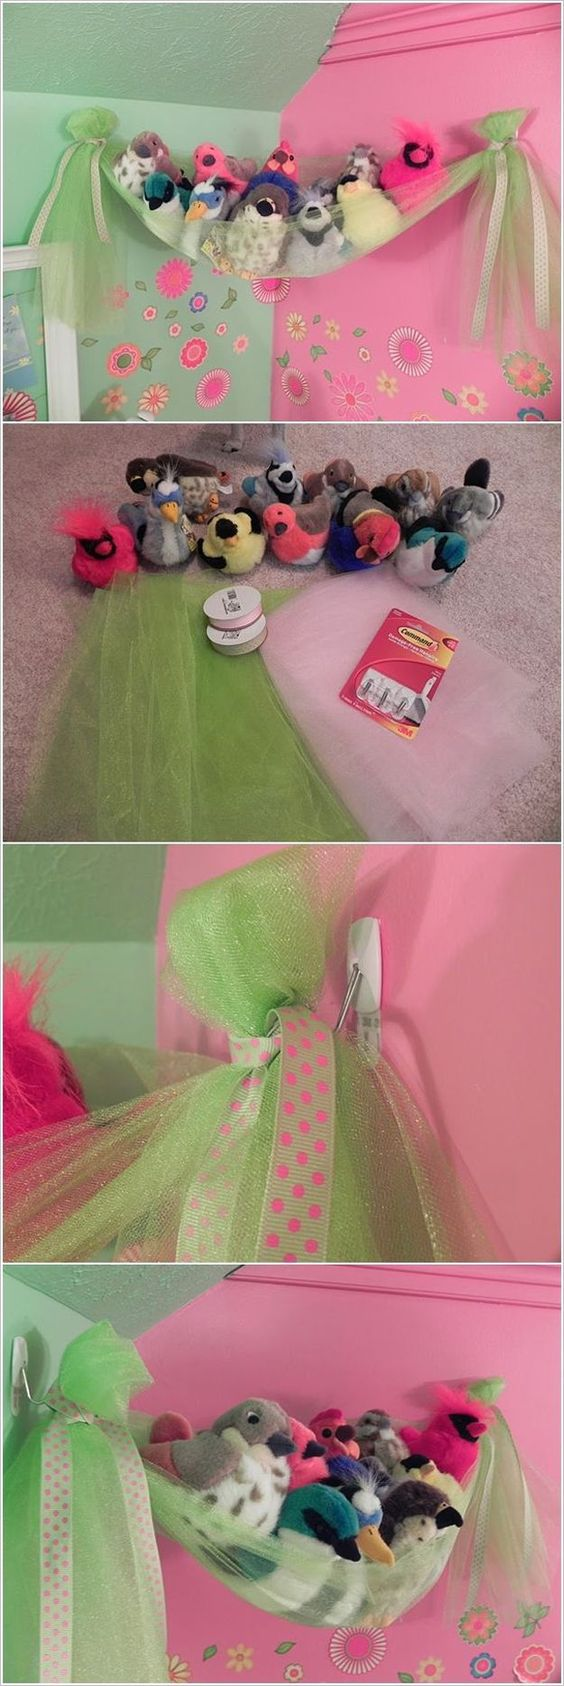 This Fancy Bird's Nest is a Super Easy Stuffed Toy Storage for Girls' Room